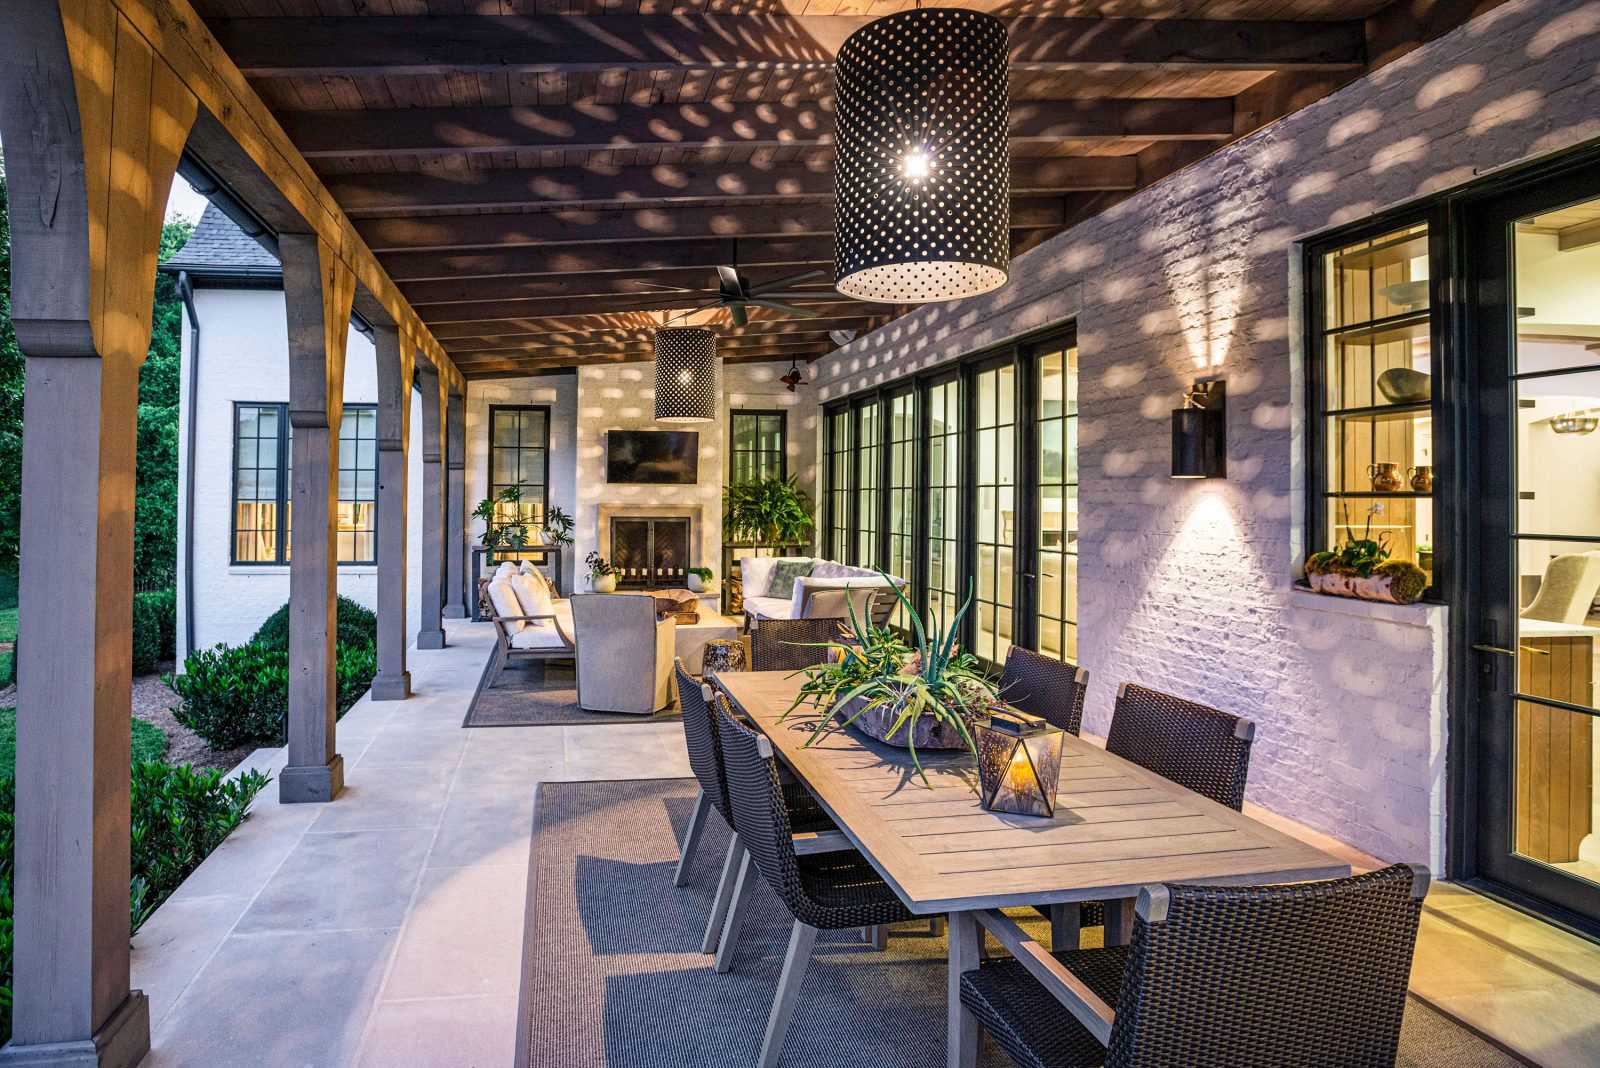 Amazing lighting by Outdoor Lighting Perspectives in this backyard entertainment and dining space